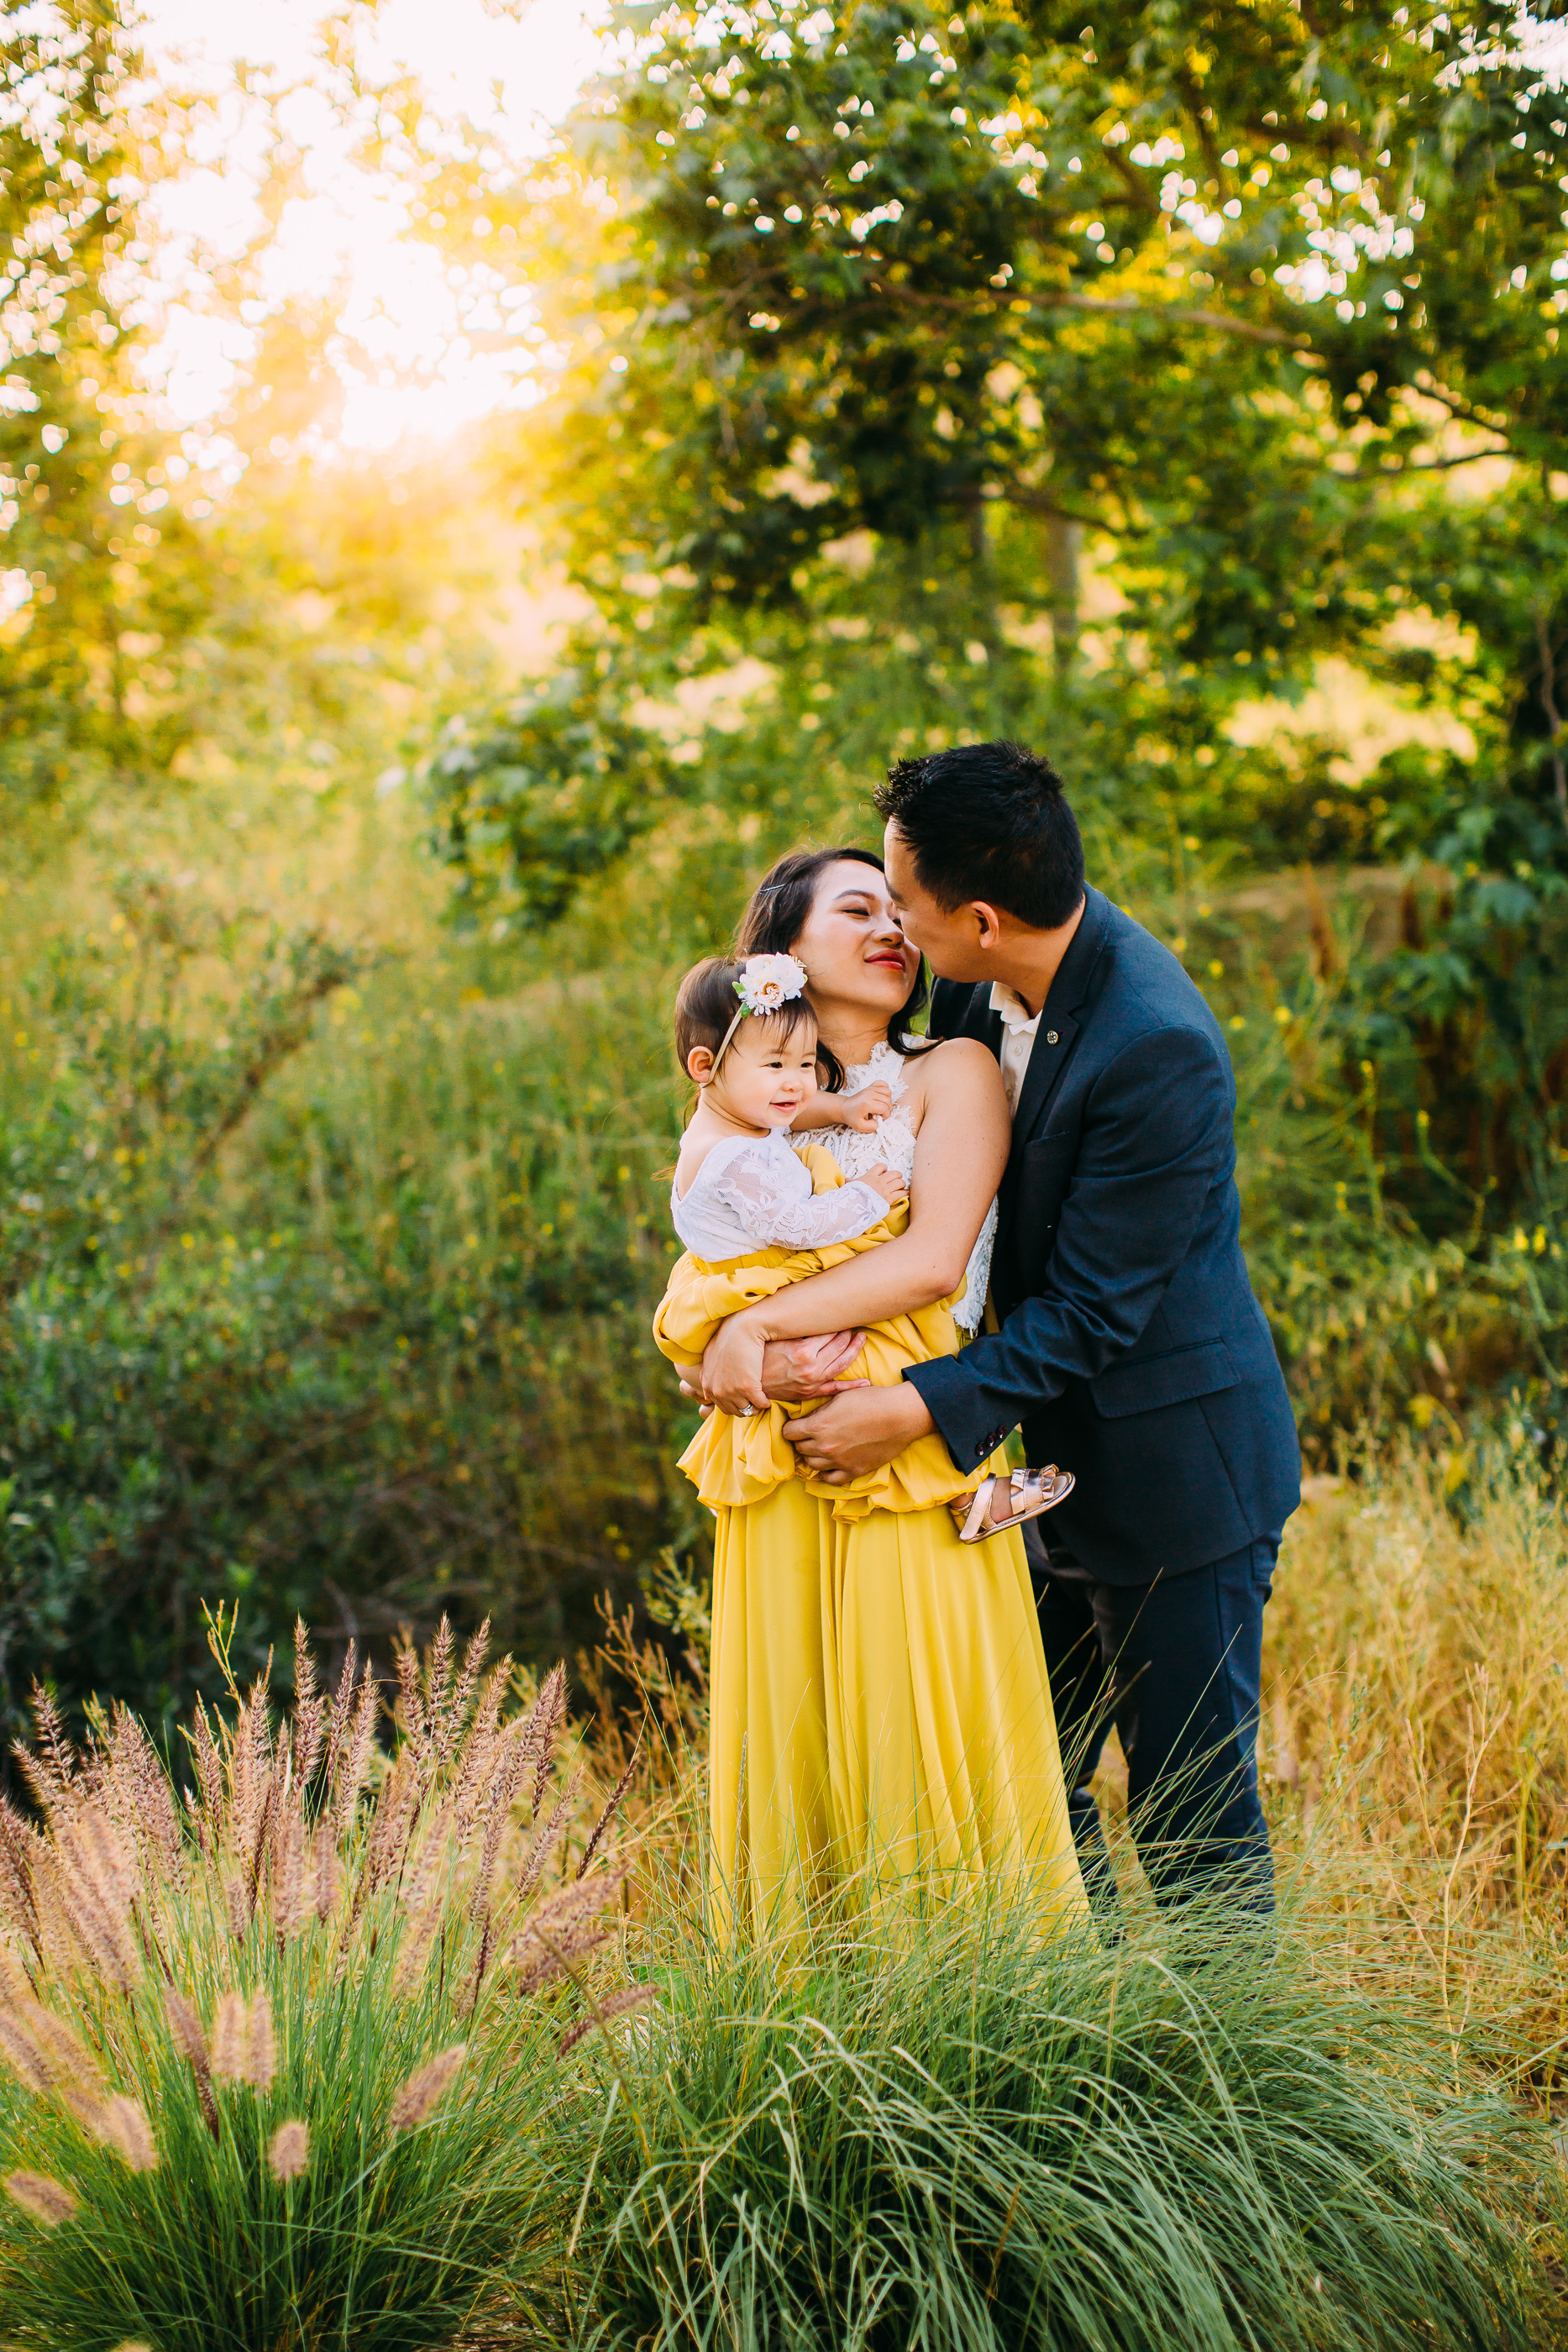 rustic field and trees family photo session in Irvine, CA